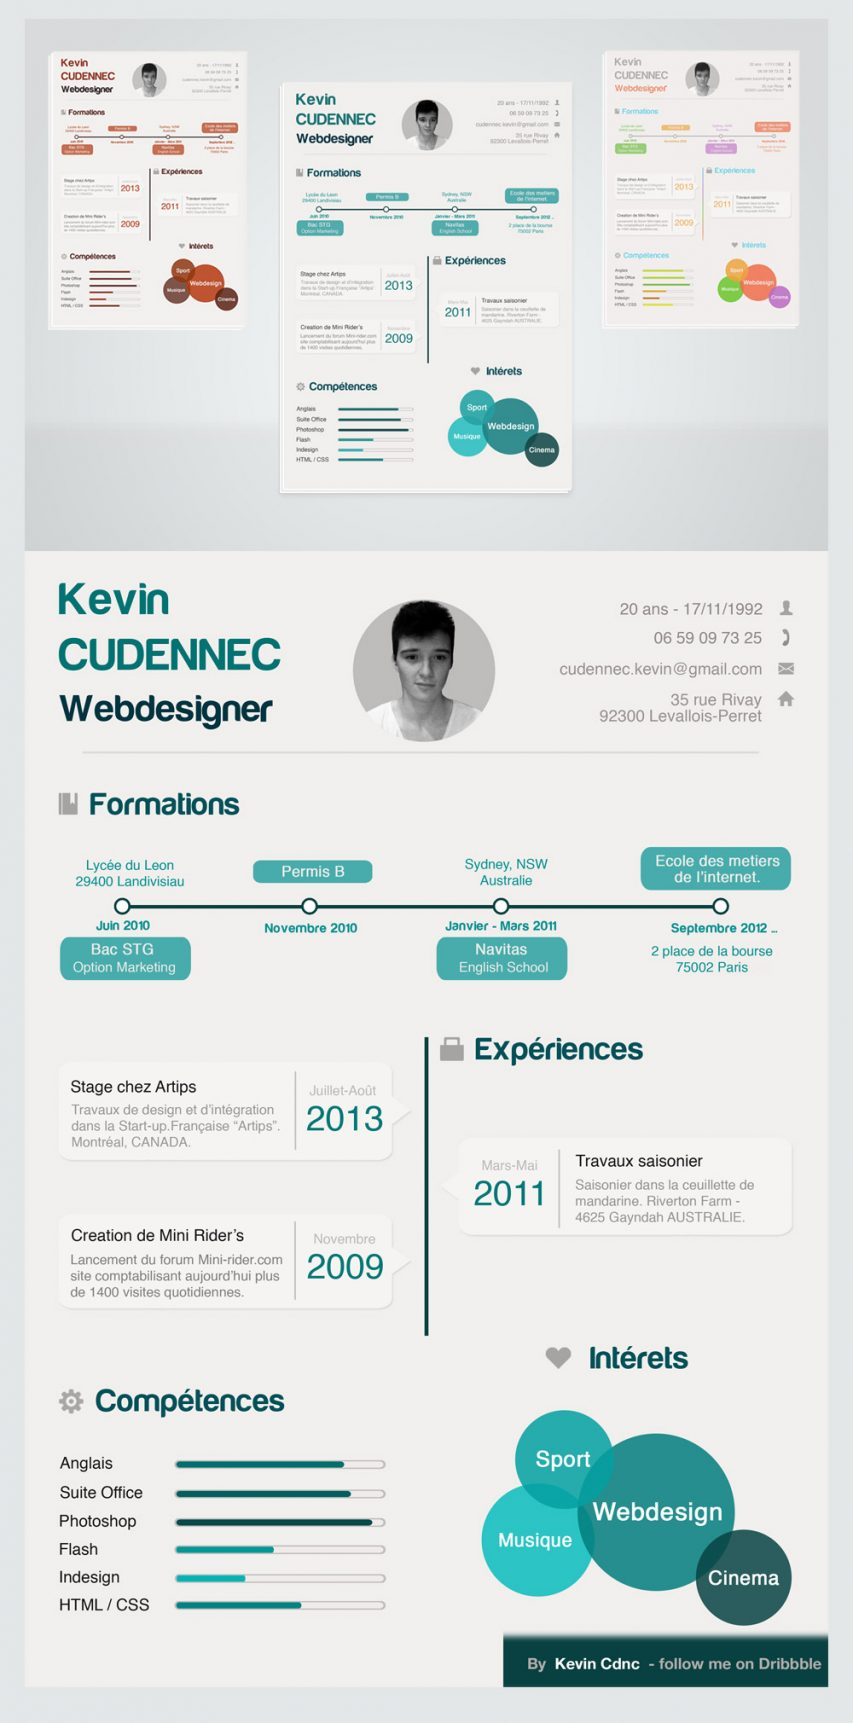 Creative Infographic Style Free Resume PSD For Designers